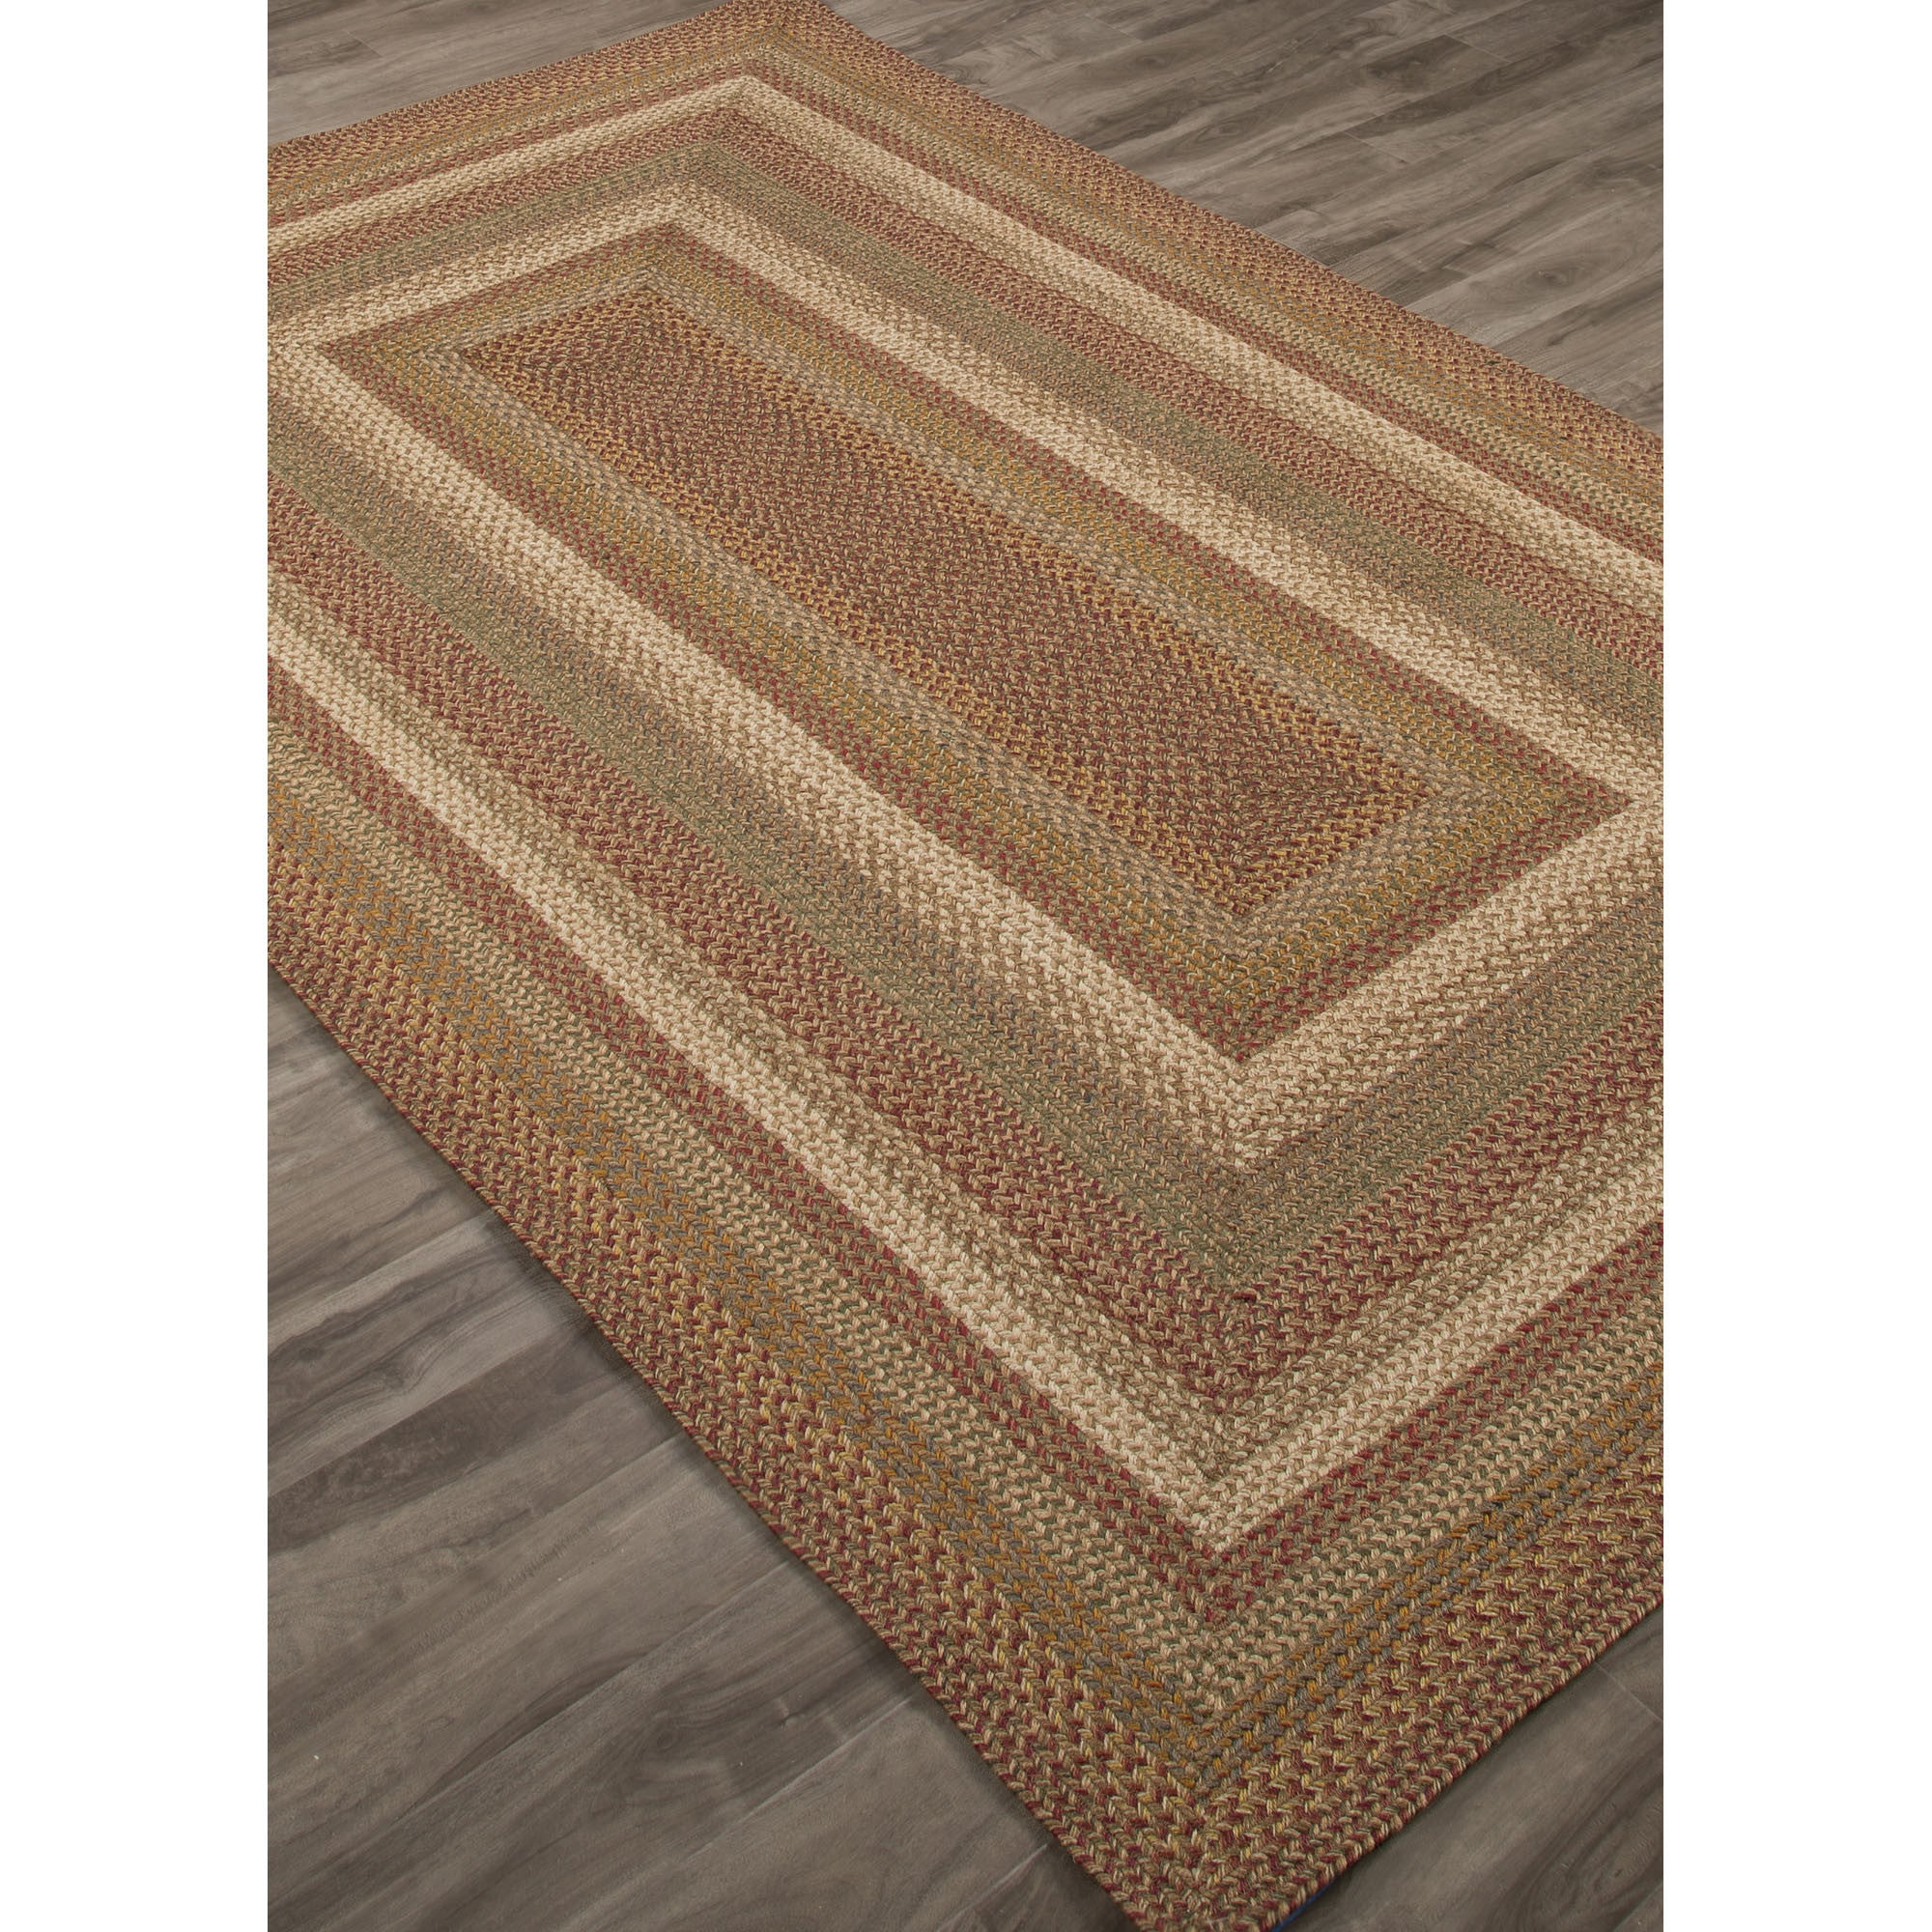 Jaipur Rugs Braided Solid Pattern Red/Green Jute And